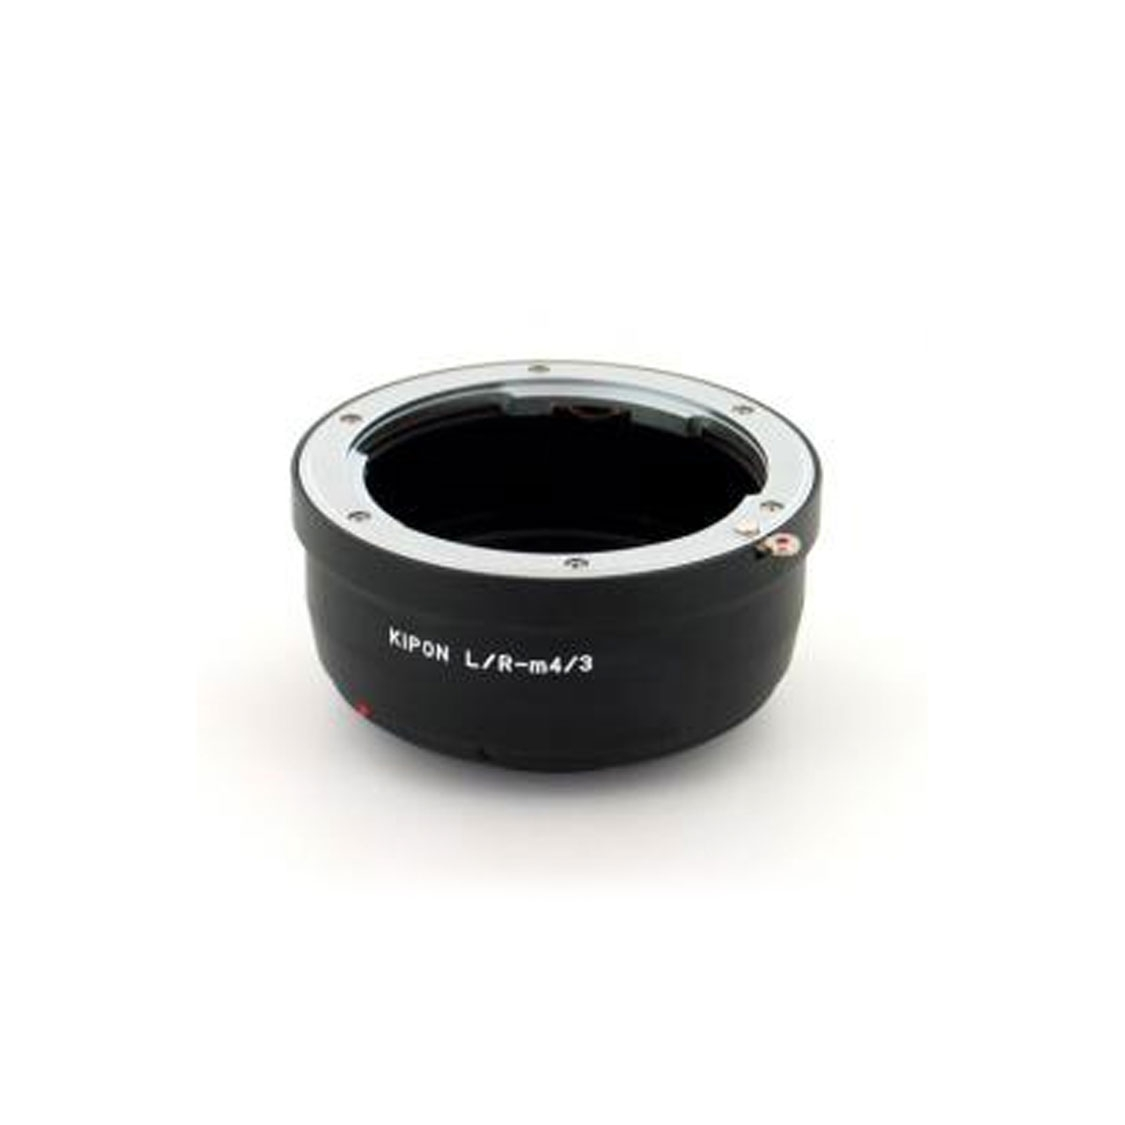 Kiwi Camera Mount Adapter for Leica R to Micro Four Thirds